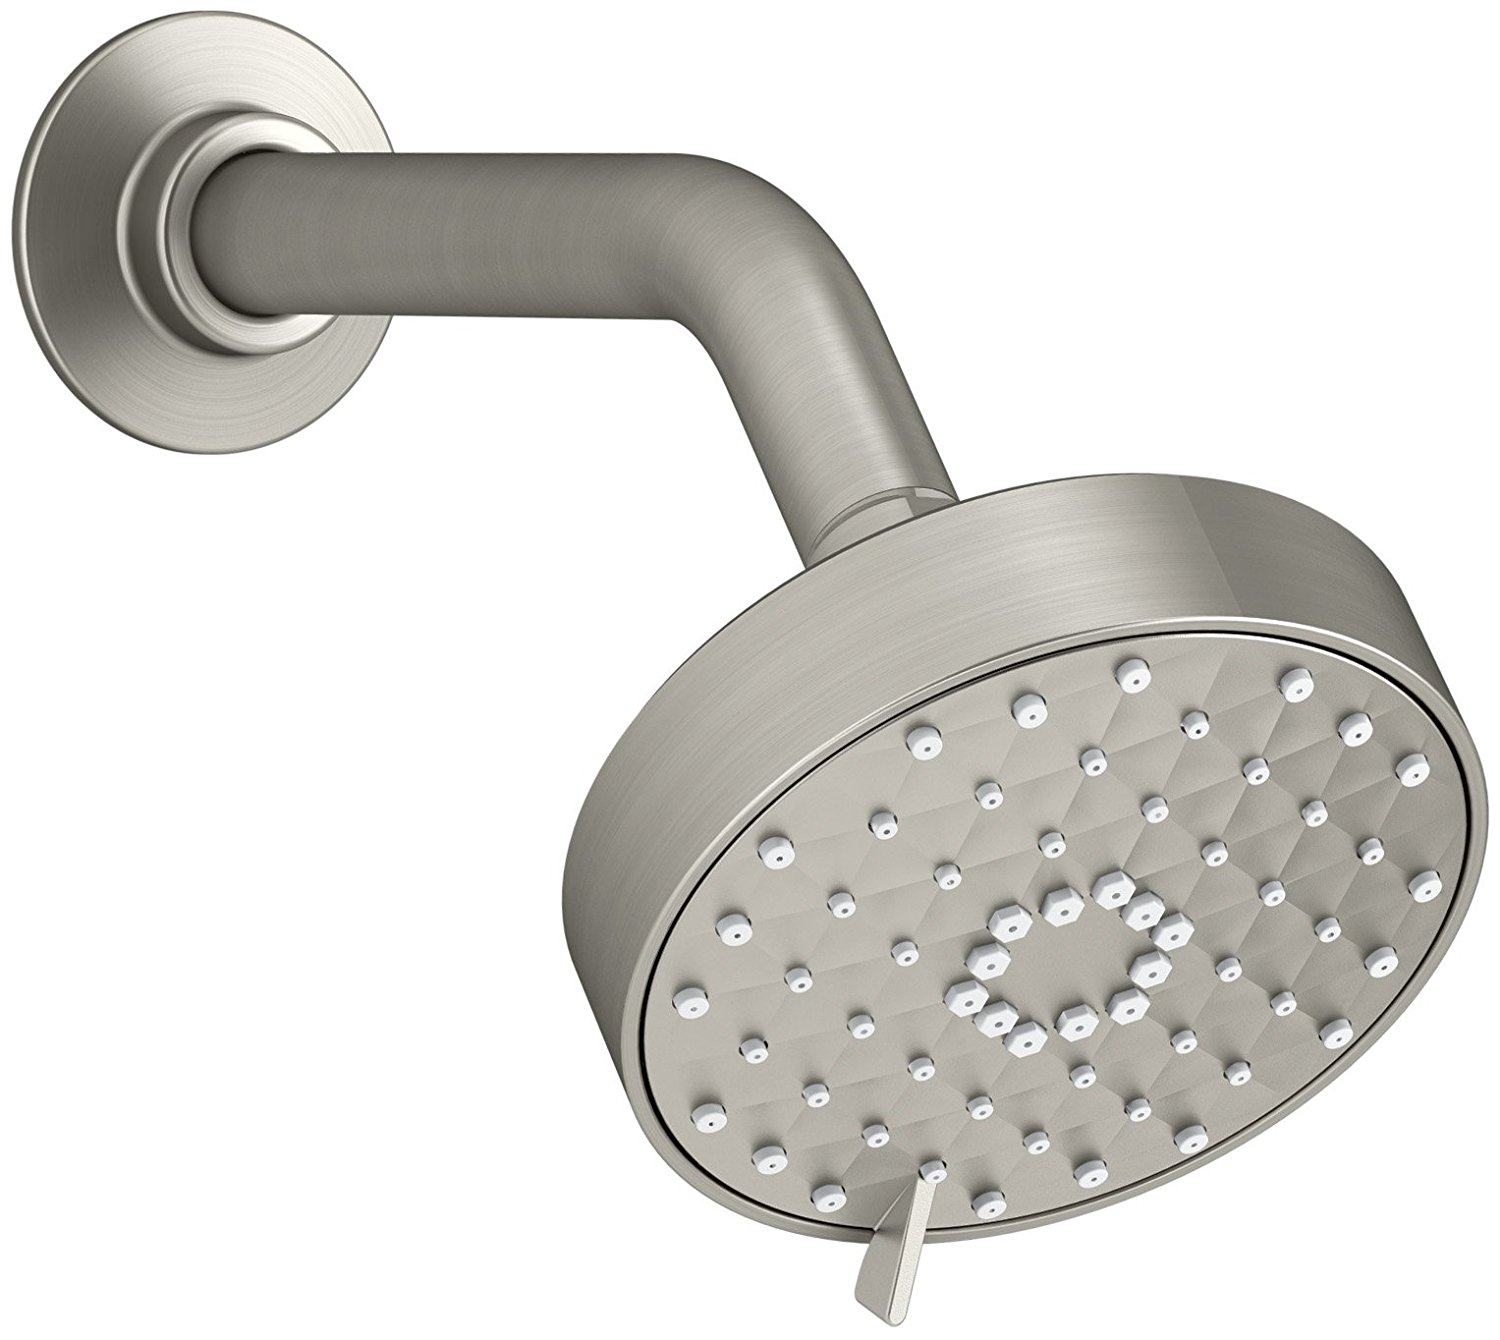 Best Shower Head Reviews 2018: Top Rated Brands for the Money